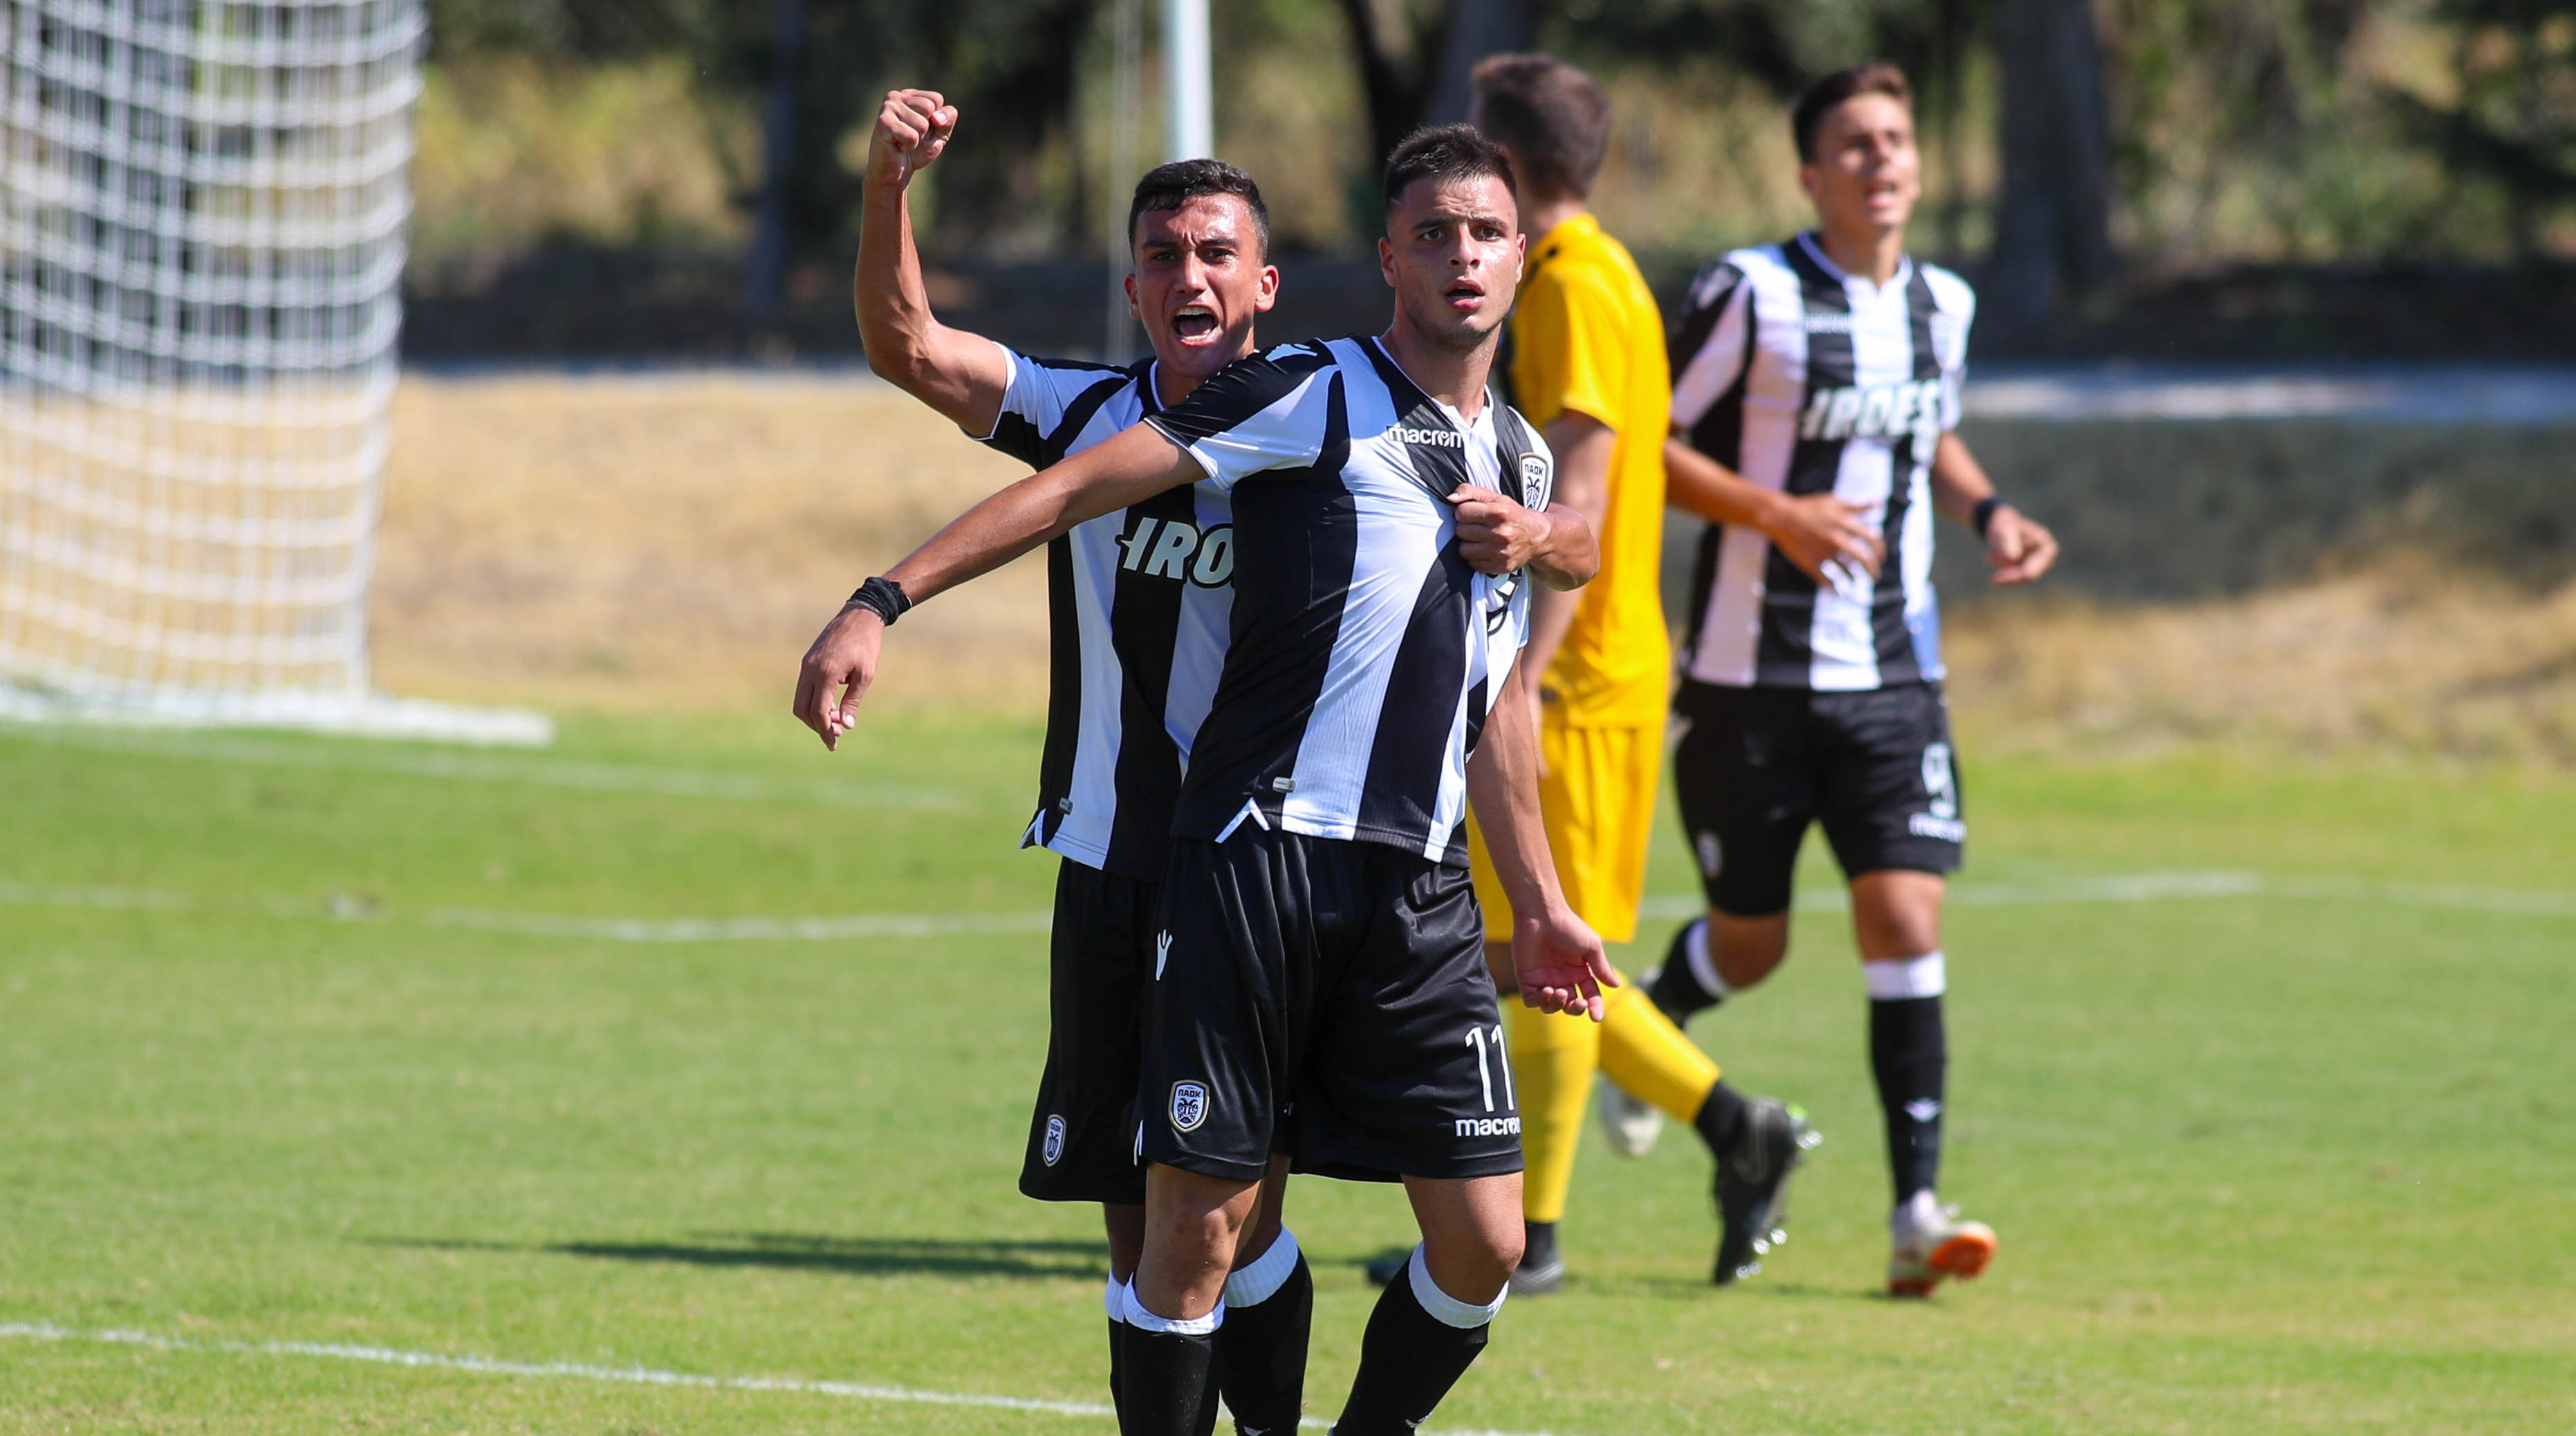 PAOK U19 – AEK Athens U19: Highlights